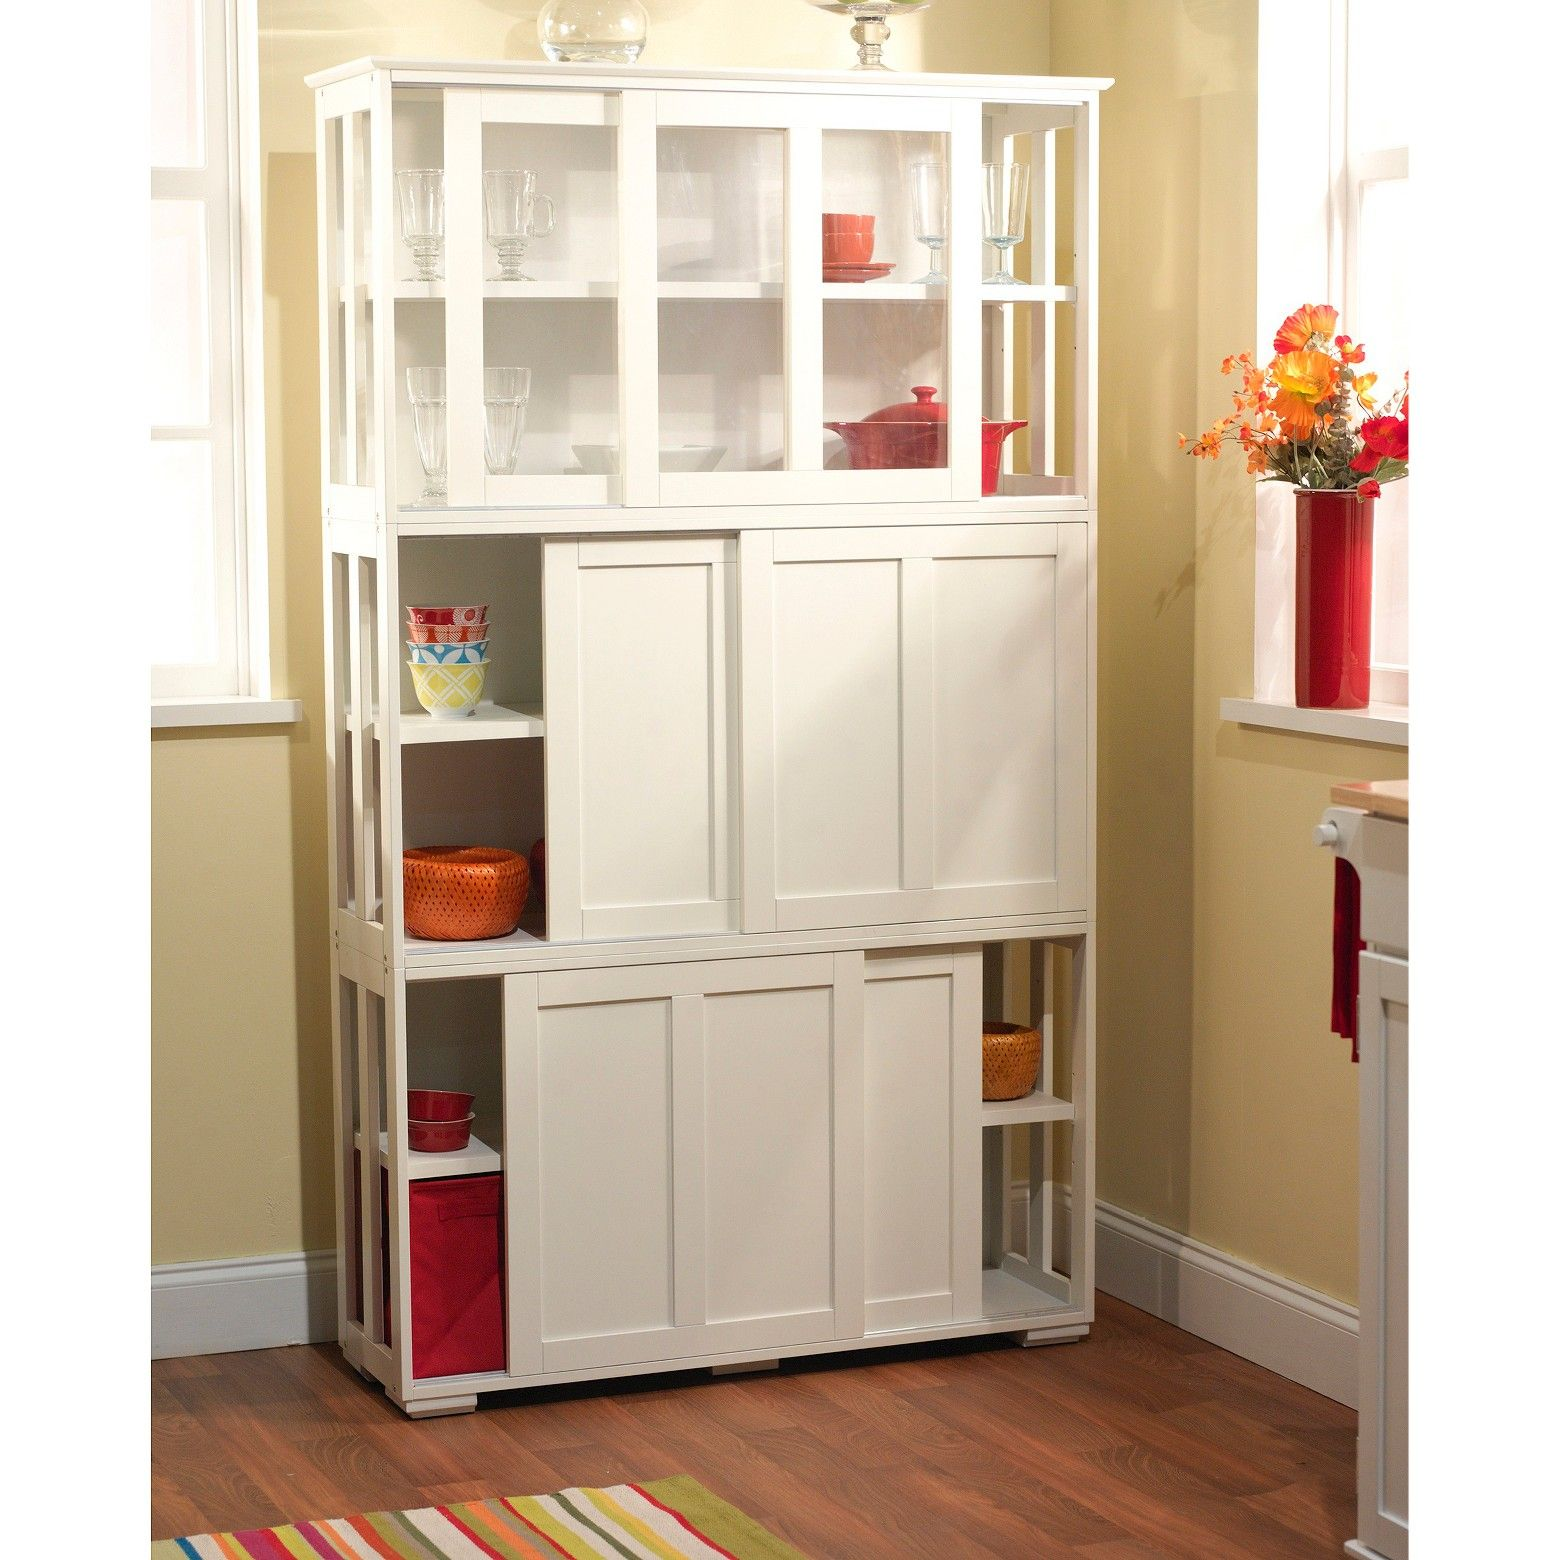 Pacific Stackable Sliding Wooden Doors Cabinet Off White Buylateral Kitchen Cabinet Remodel Glass Cabinet Doors Kitchen Cabinets